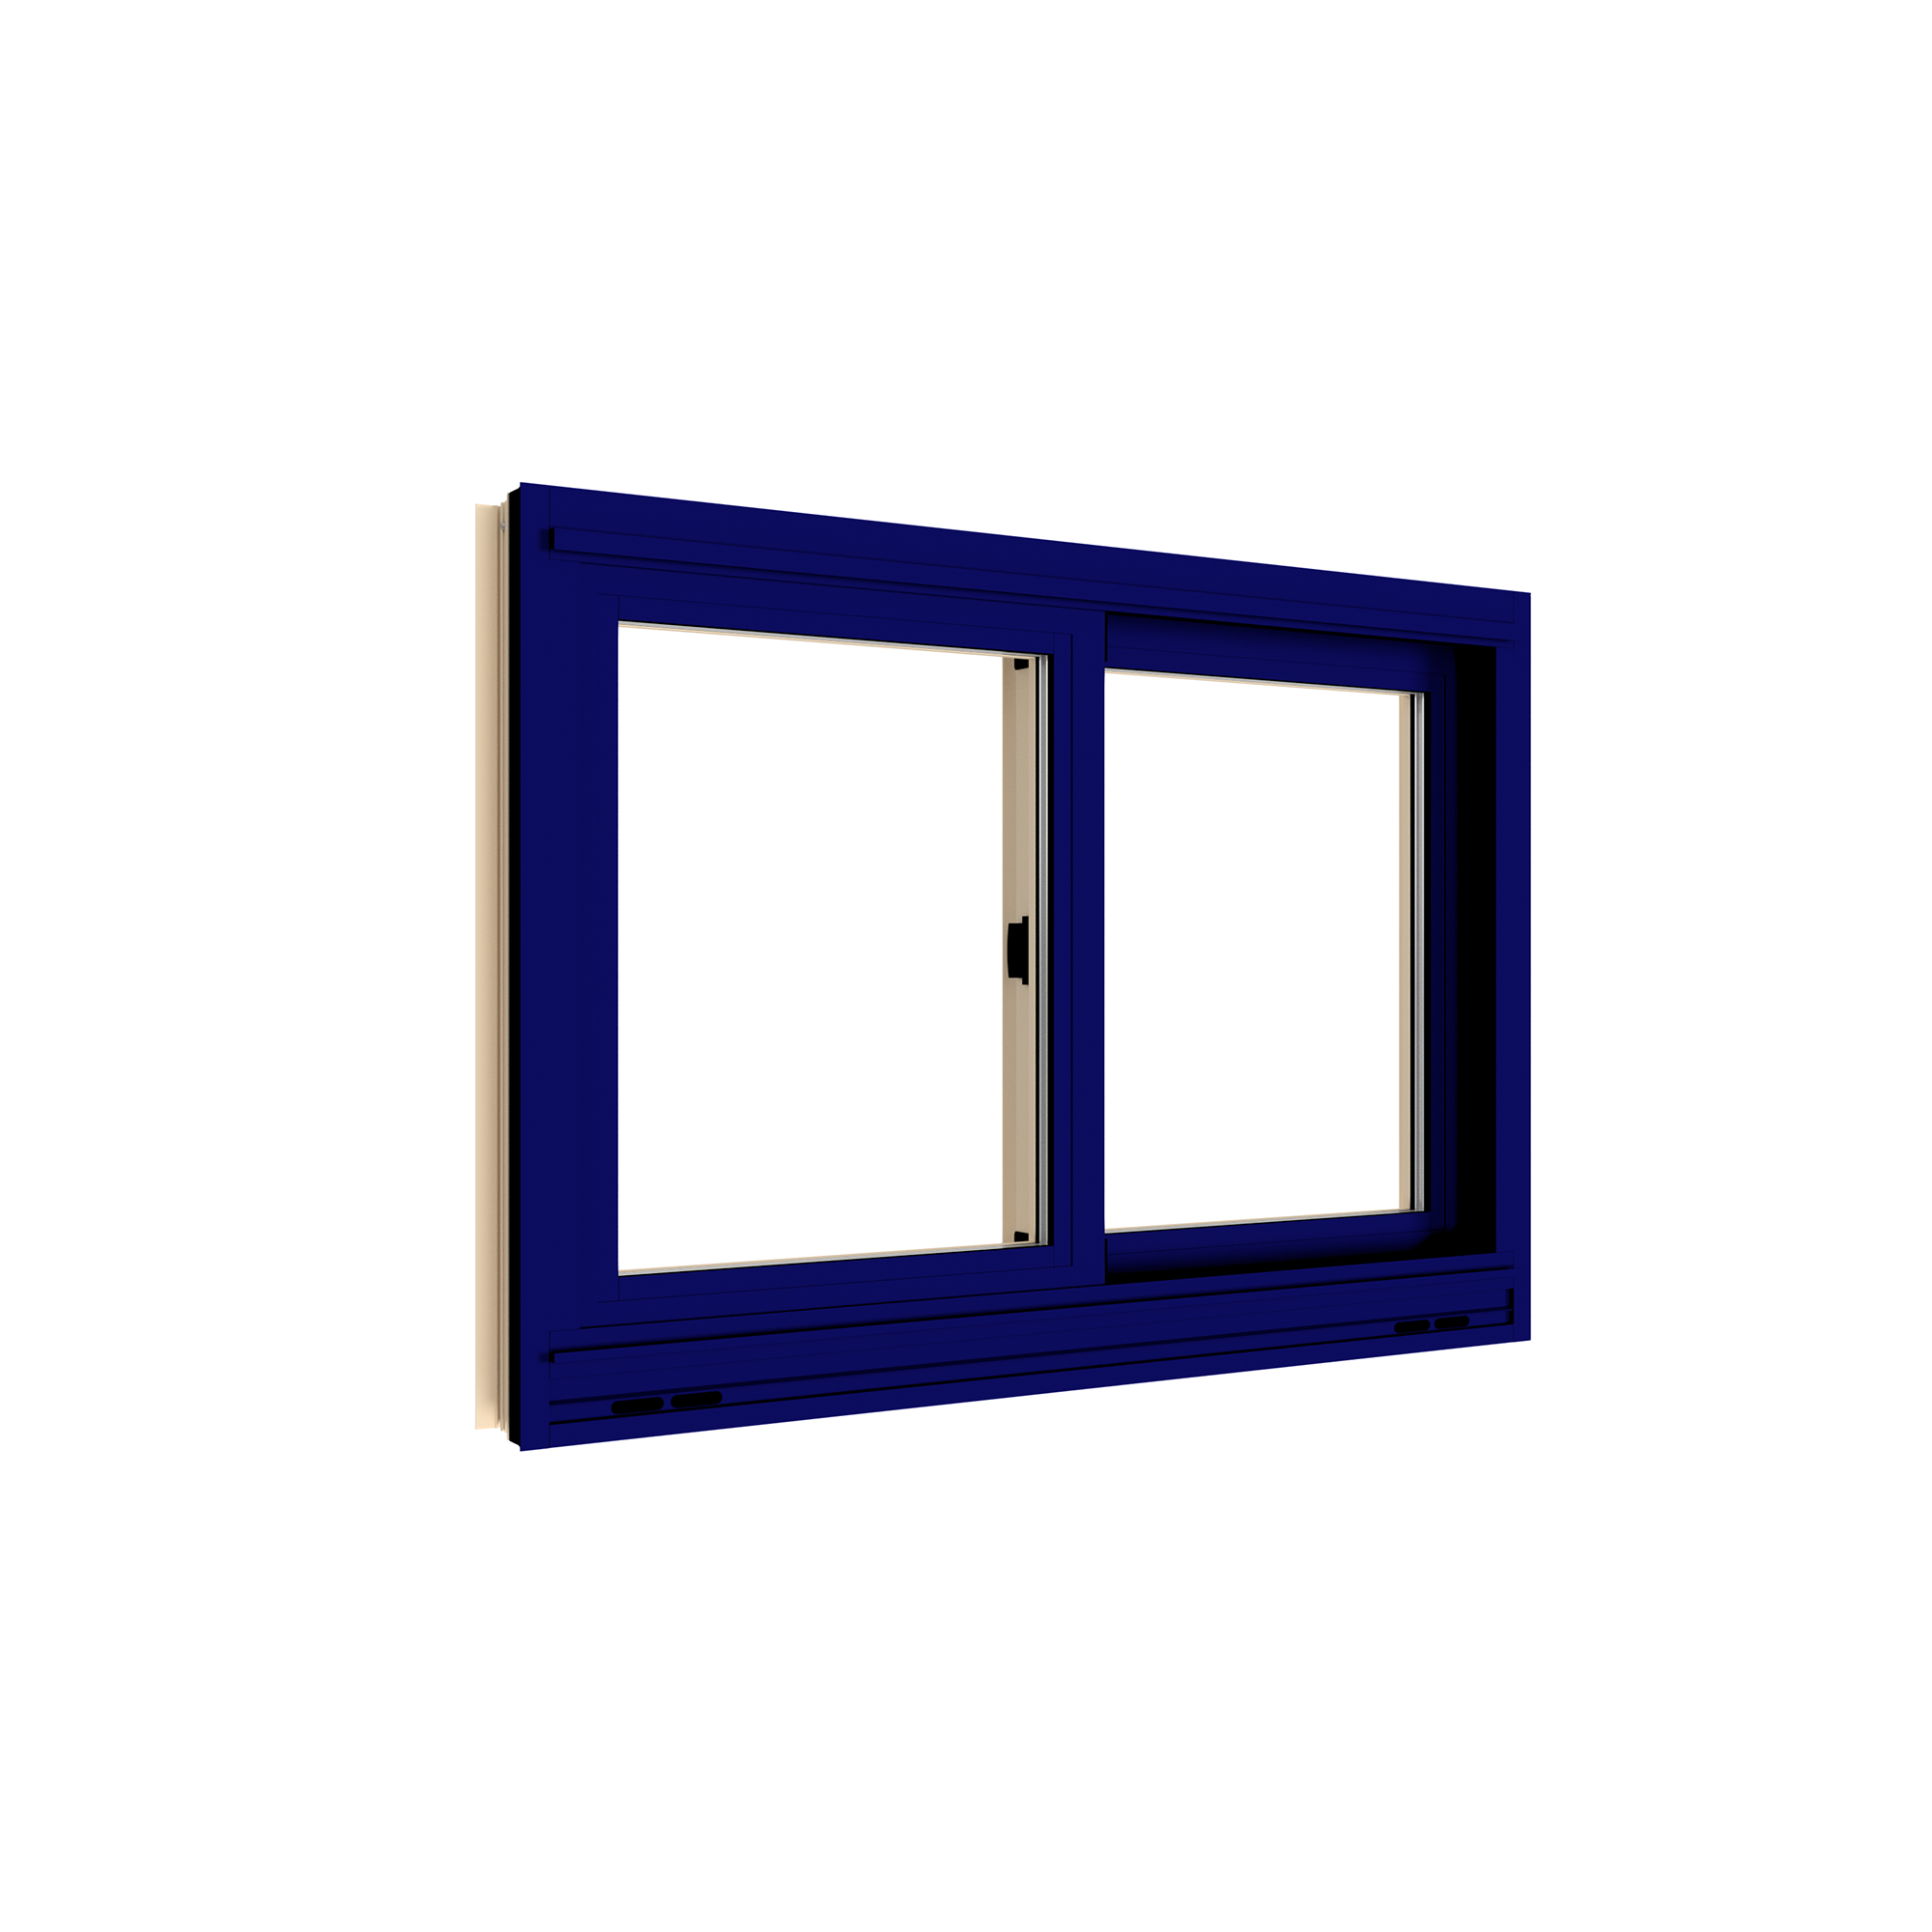 Exterior View, Insulated Glass with Sash Lock sash lock